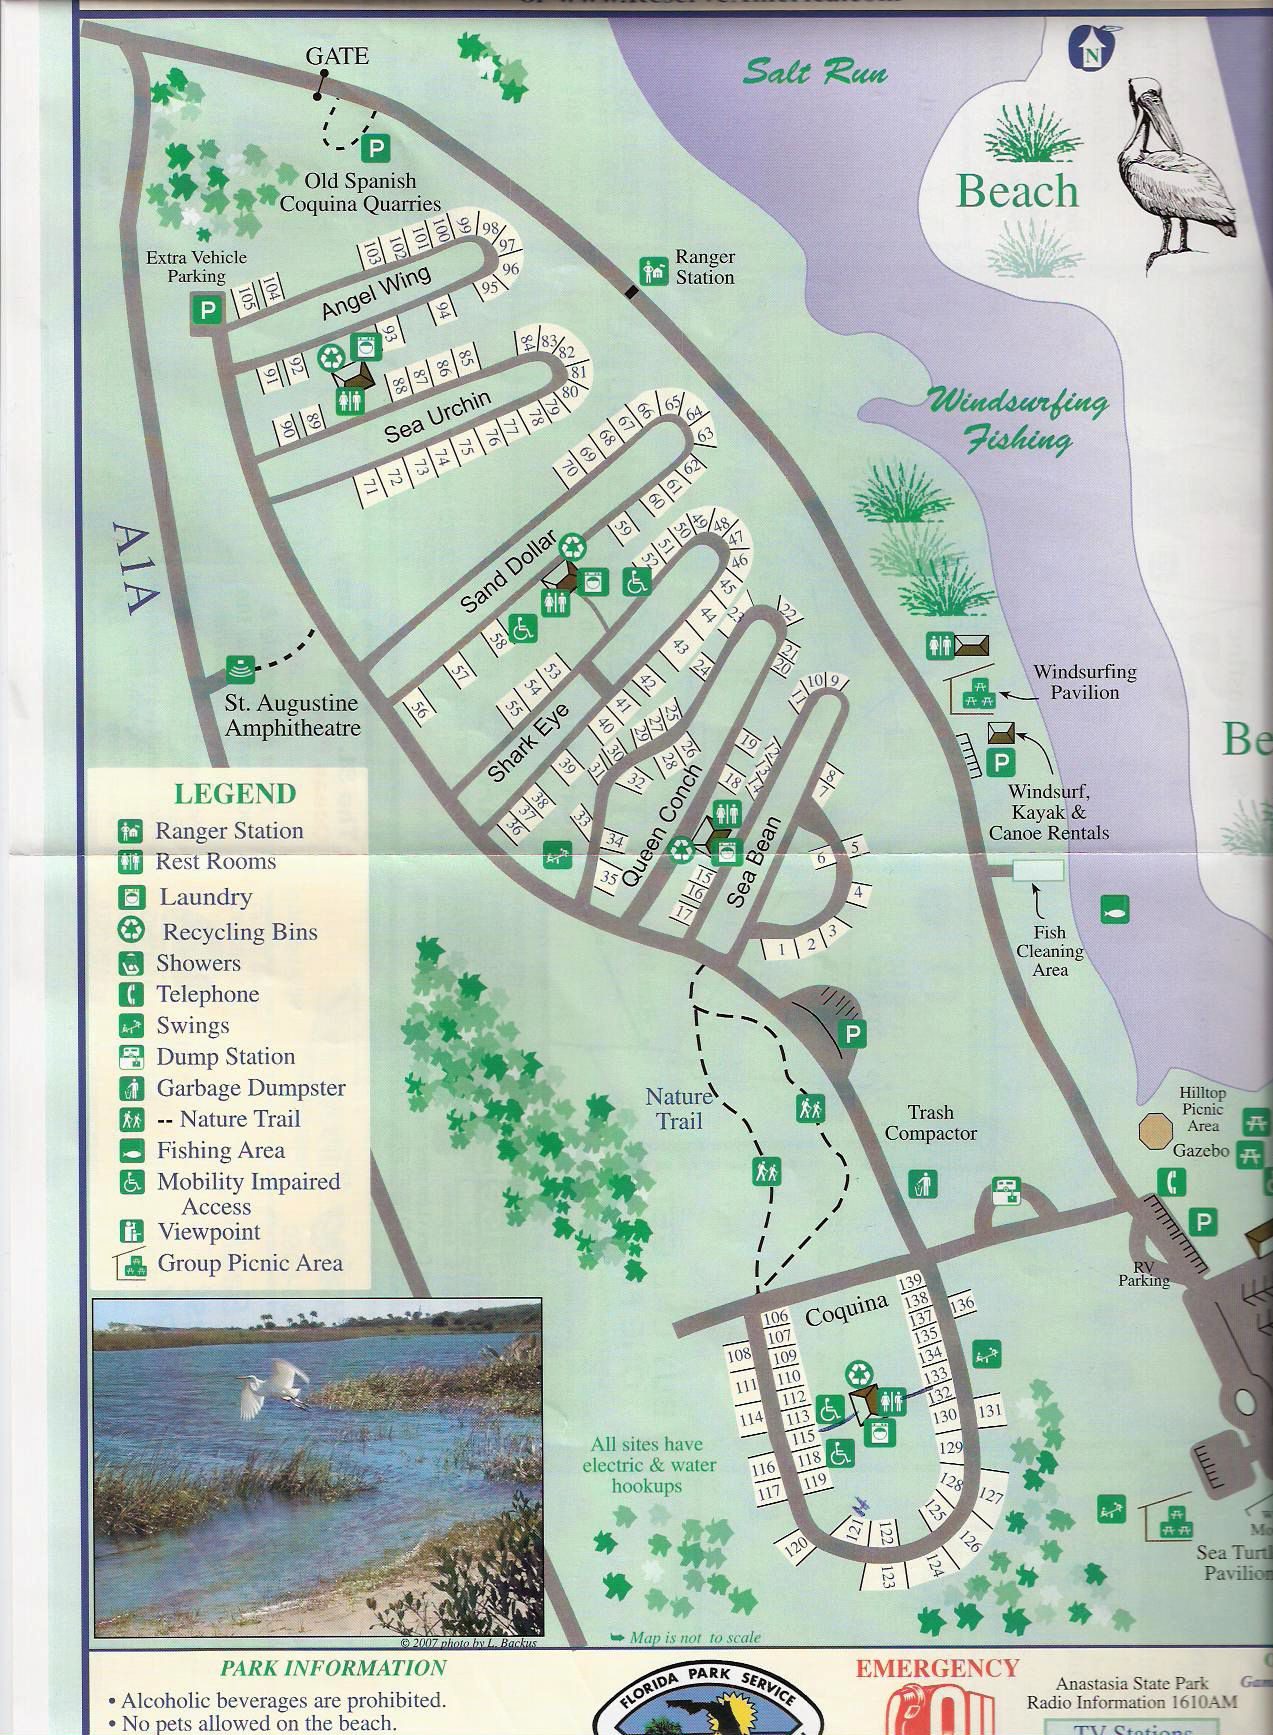 Campground Map - Anastasia State Park - St. Augustine - Florida - Florida Tent Camping Map